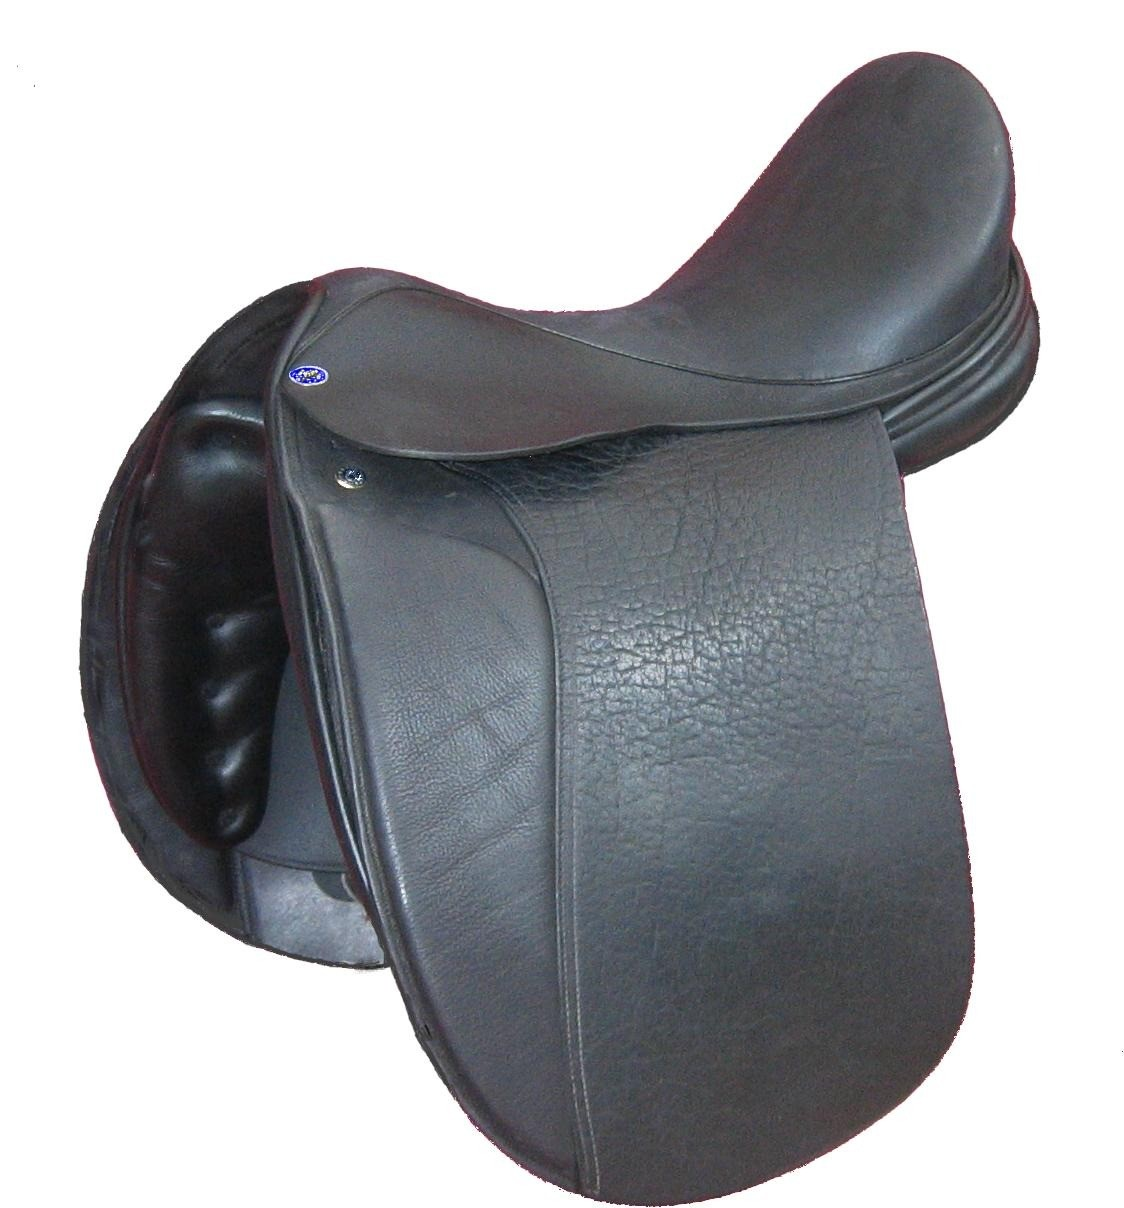 Nexus Dressage Saddle